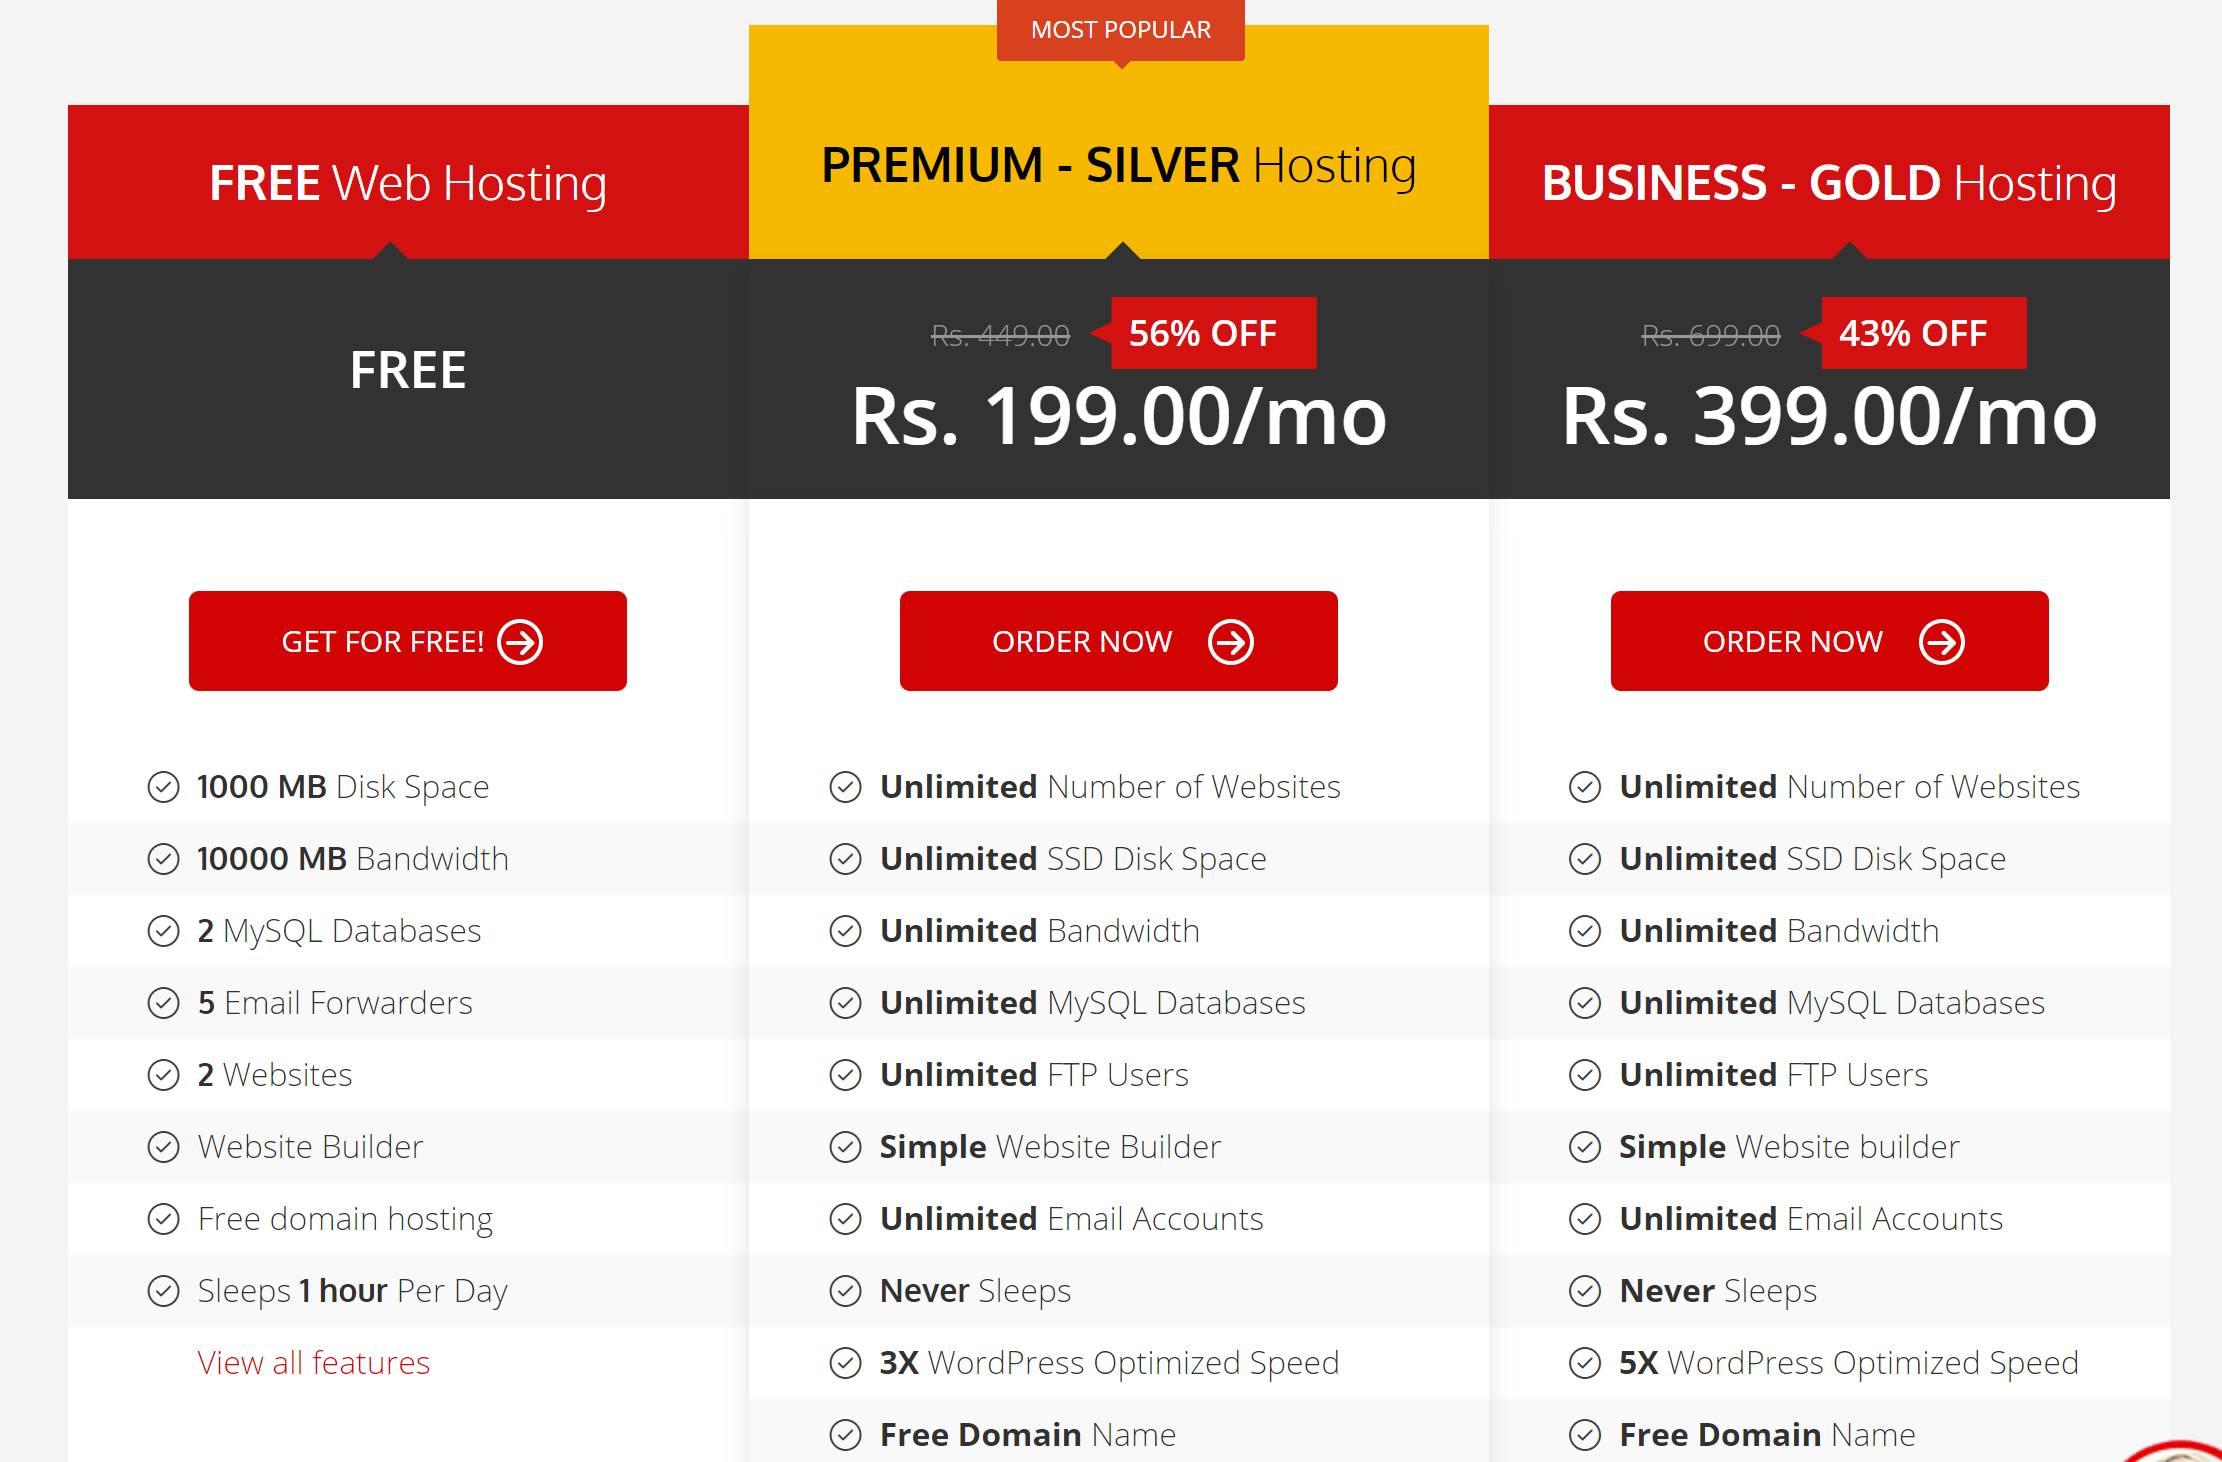 000webhost Hosting Review With Pros and Cons In Detailed